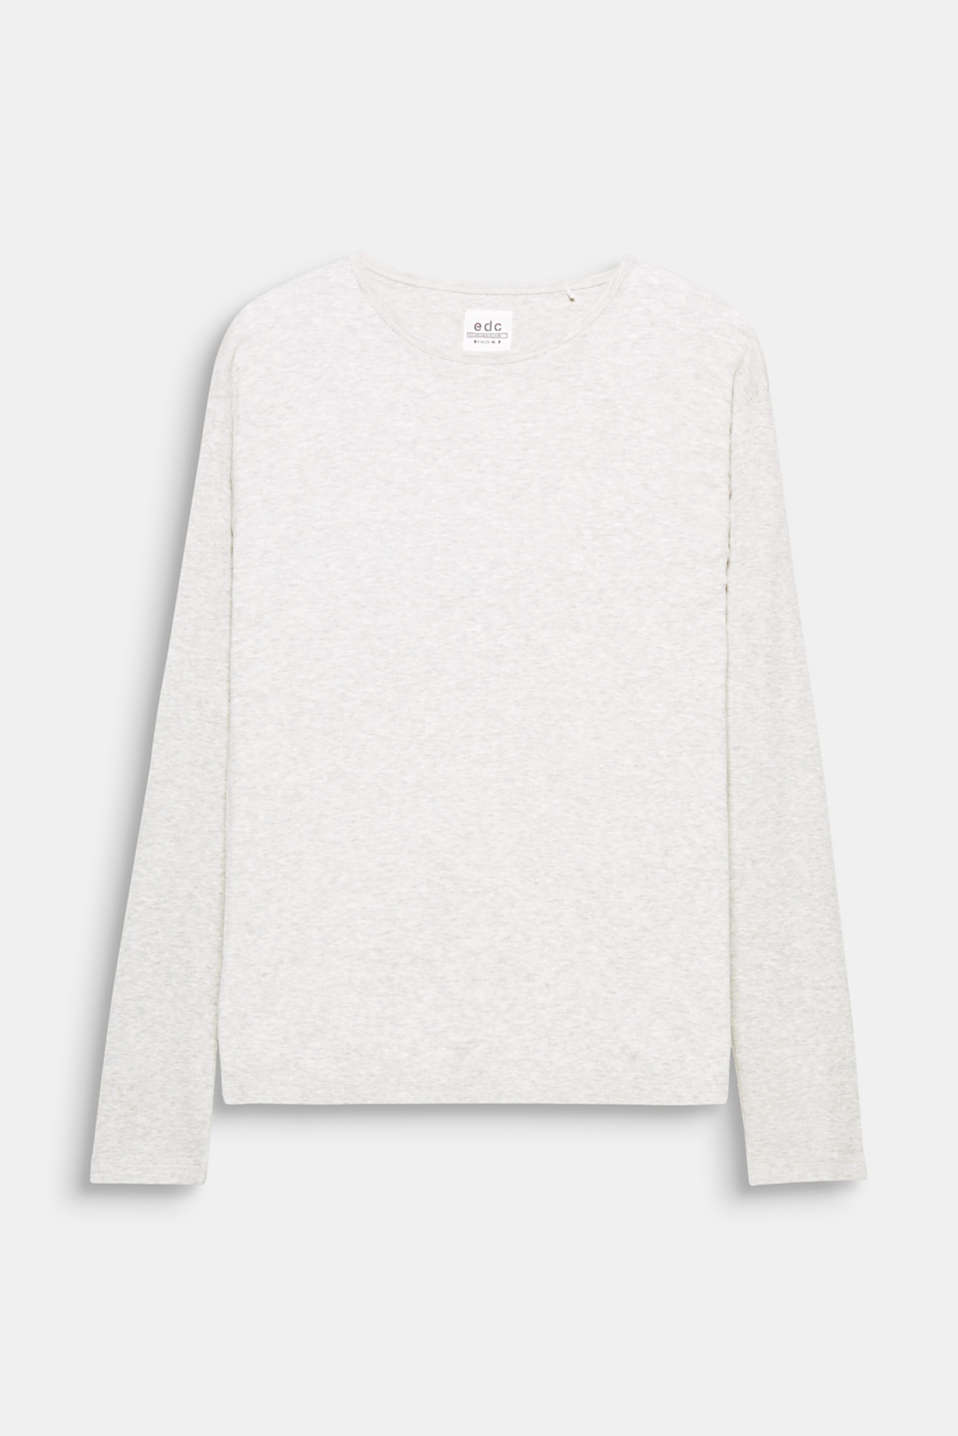 A fashion basic containing premium, environmentally-friendly organic cotton: melange long sleeve top in ribbed jersey.